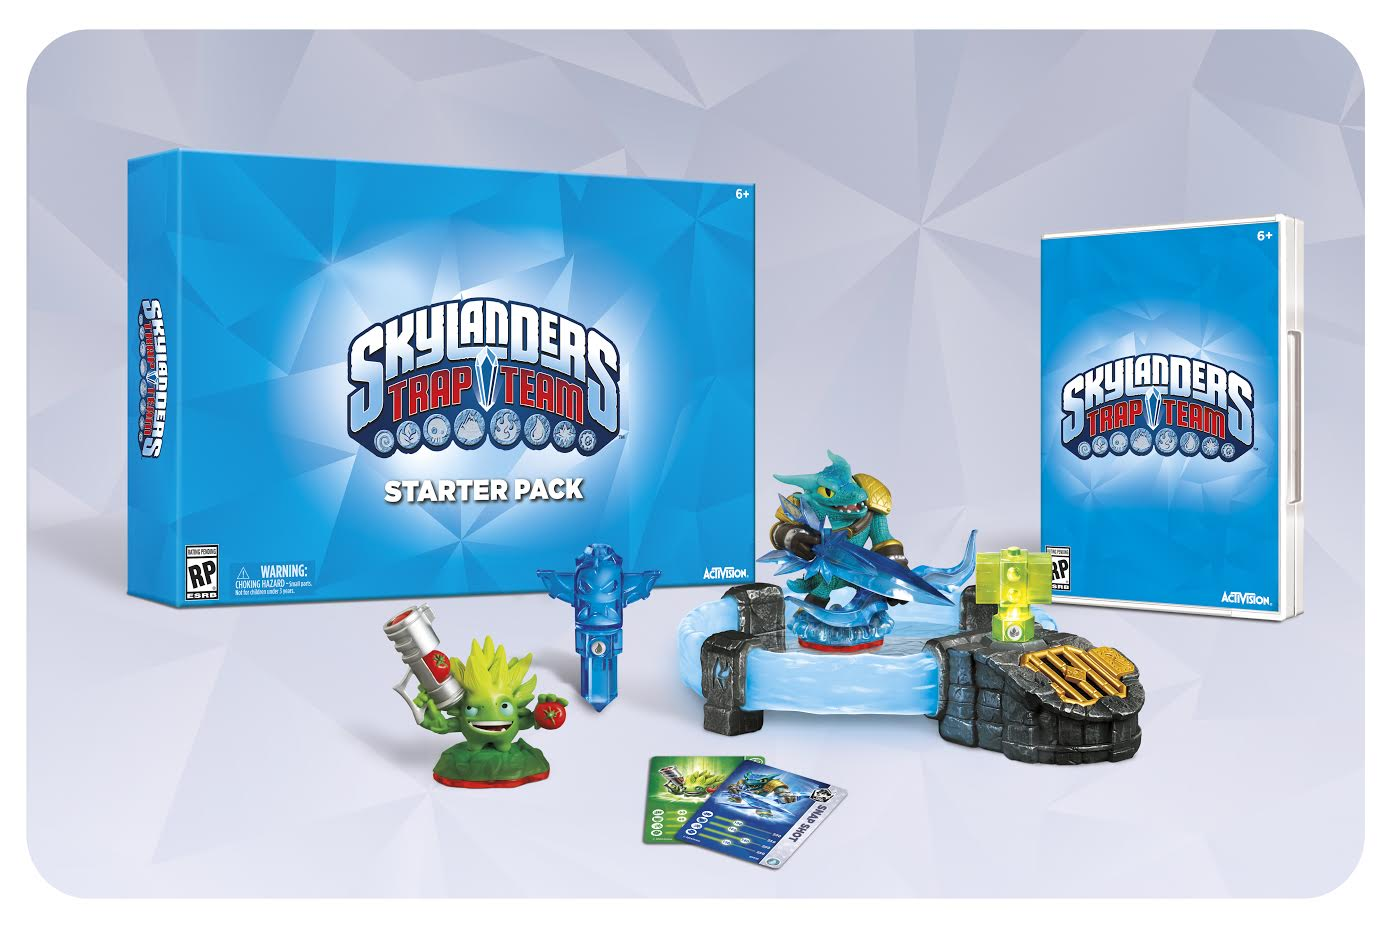 The new Skylanders Trap Team Starter Pack